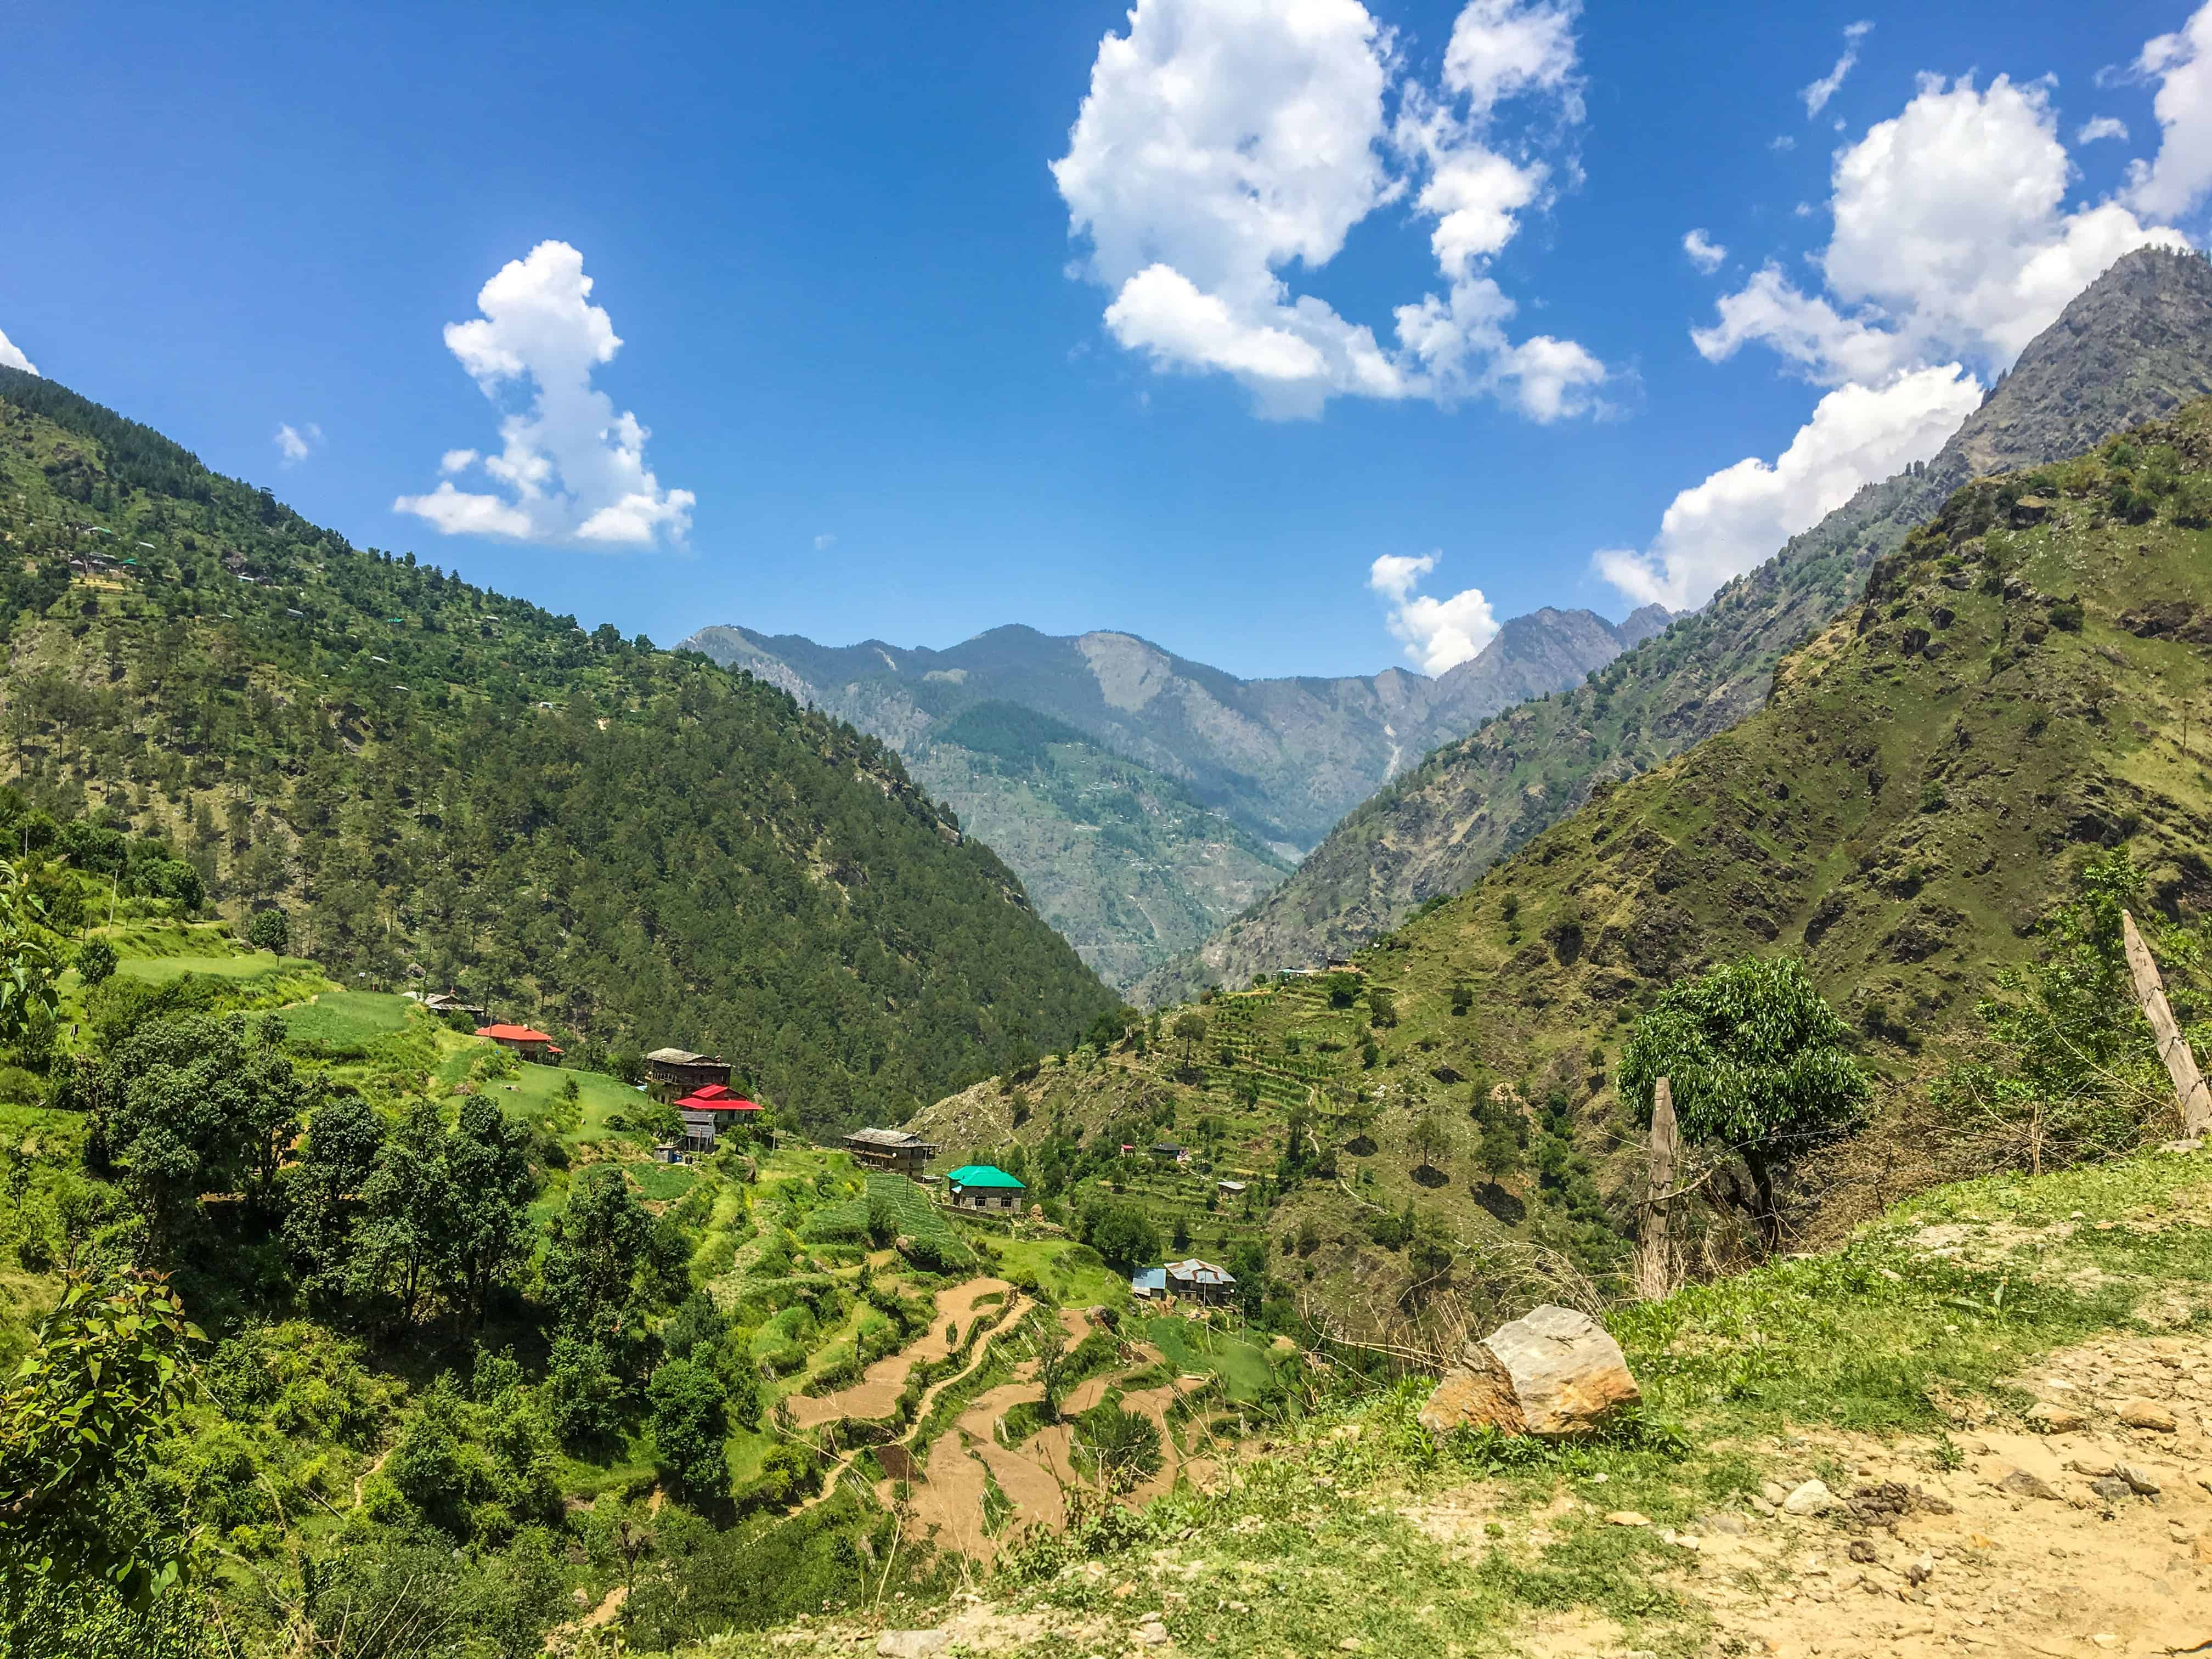 The valley dotted with colourful Himachali houses